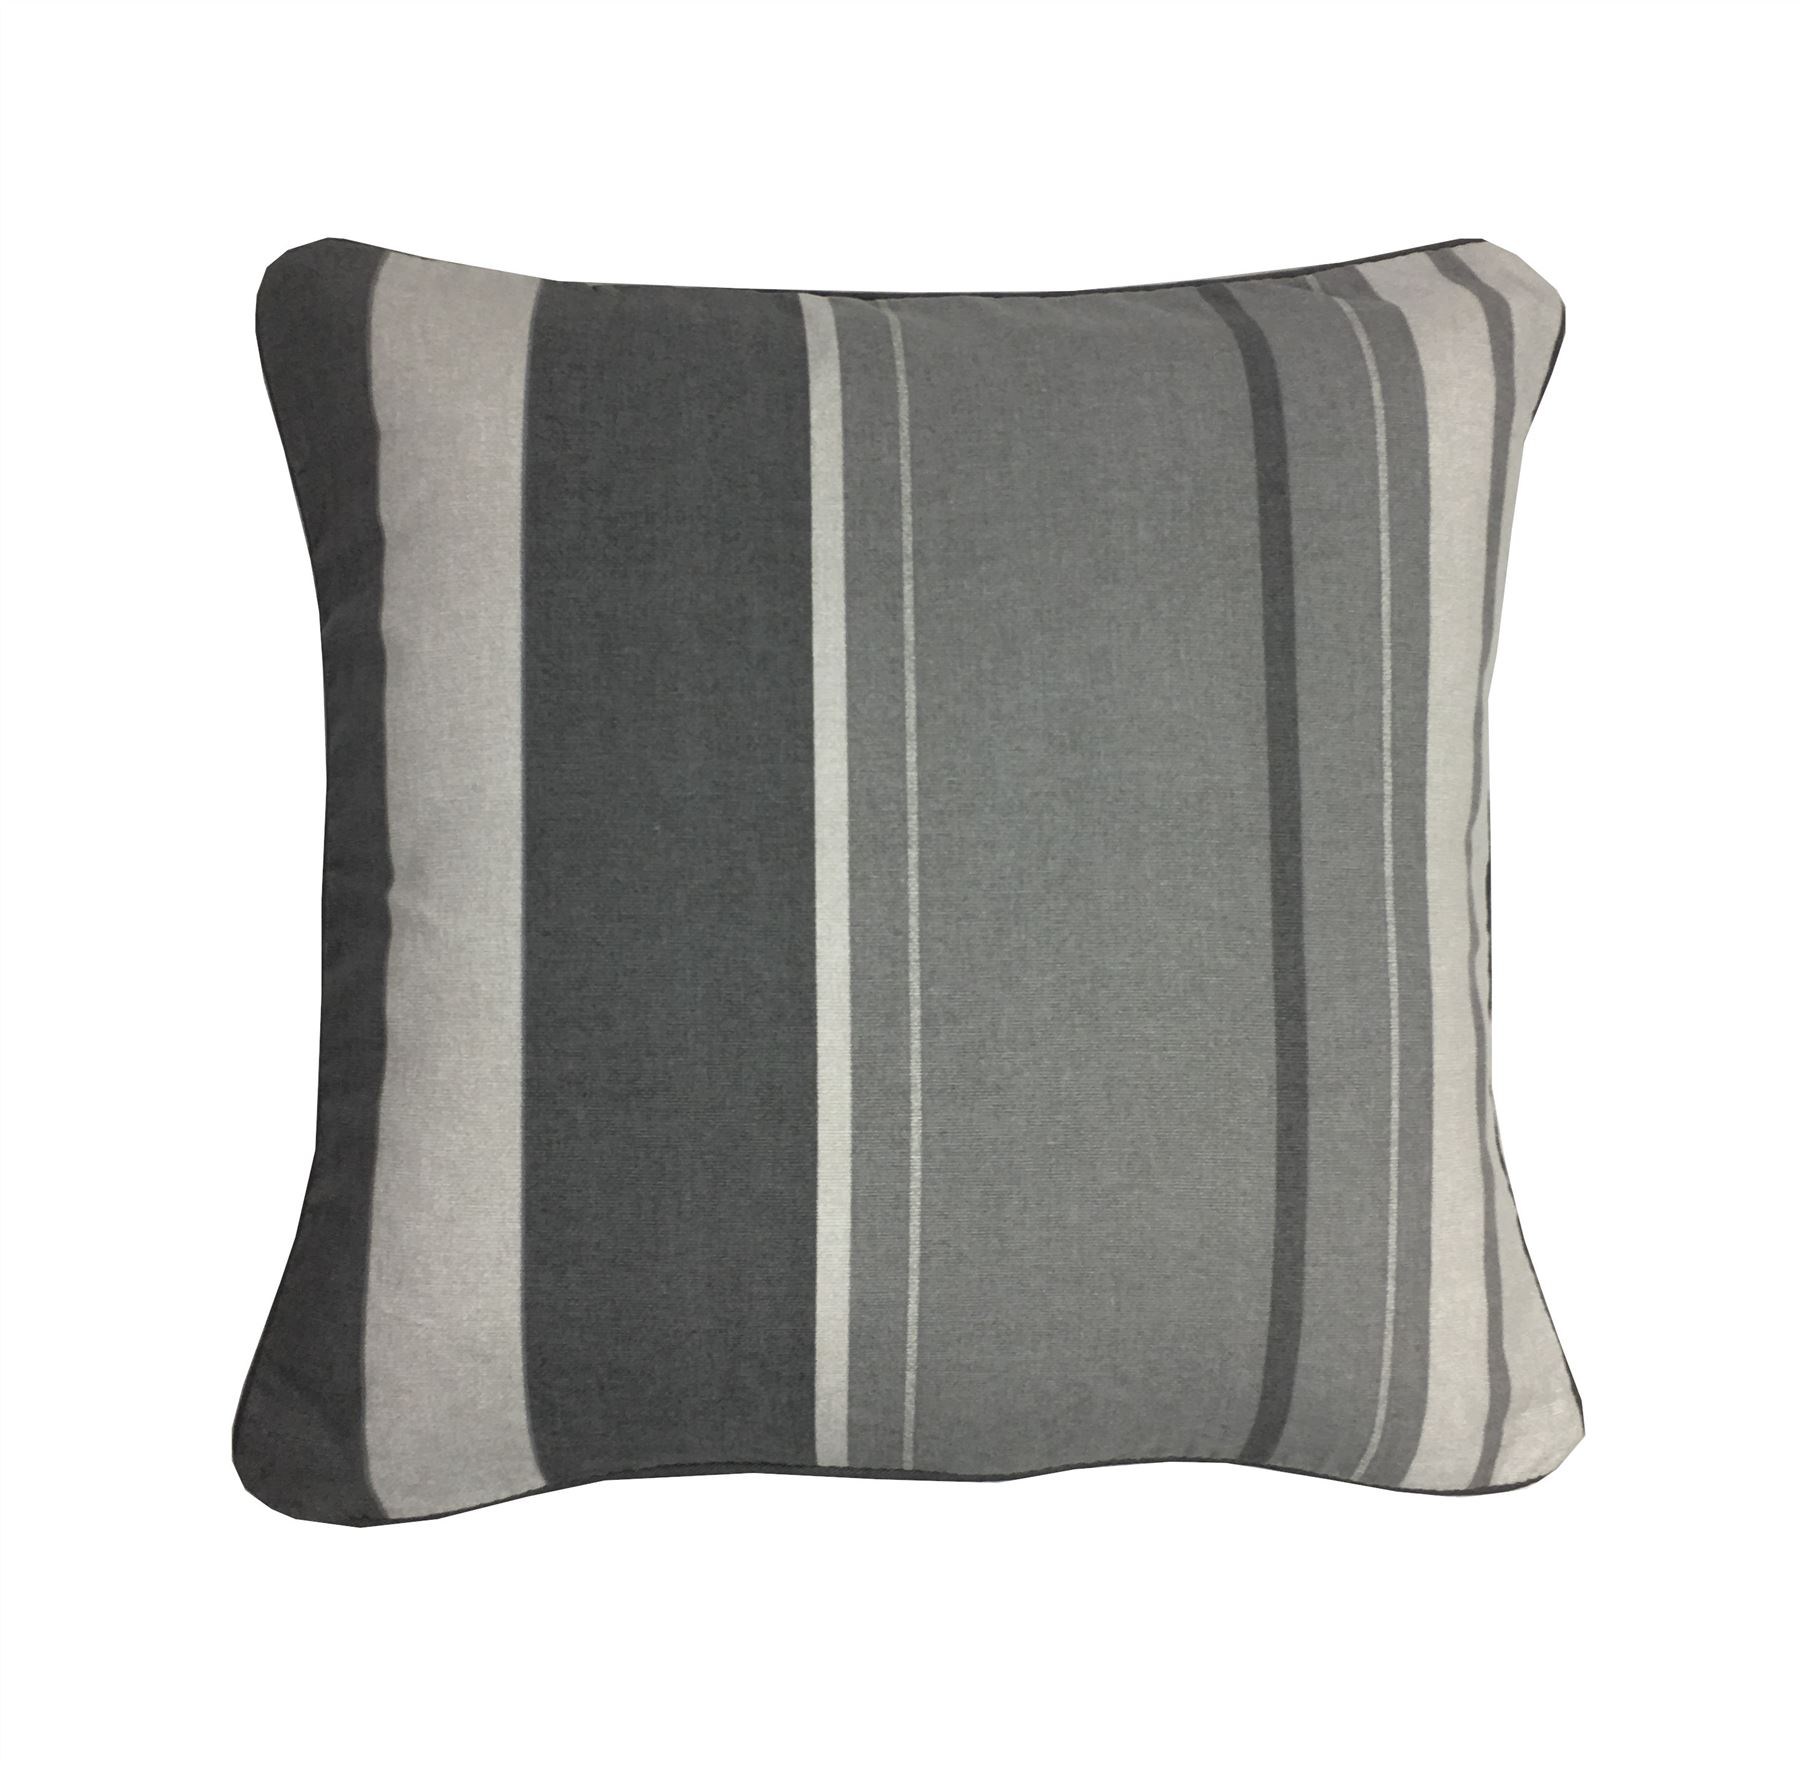 "VERTICAL STRIPE YELLOW GREY BEIGE PIPED 17/"" 43CM CUSHION COVER"